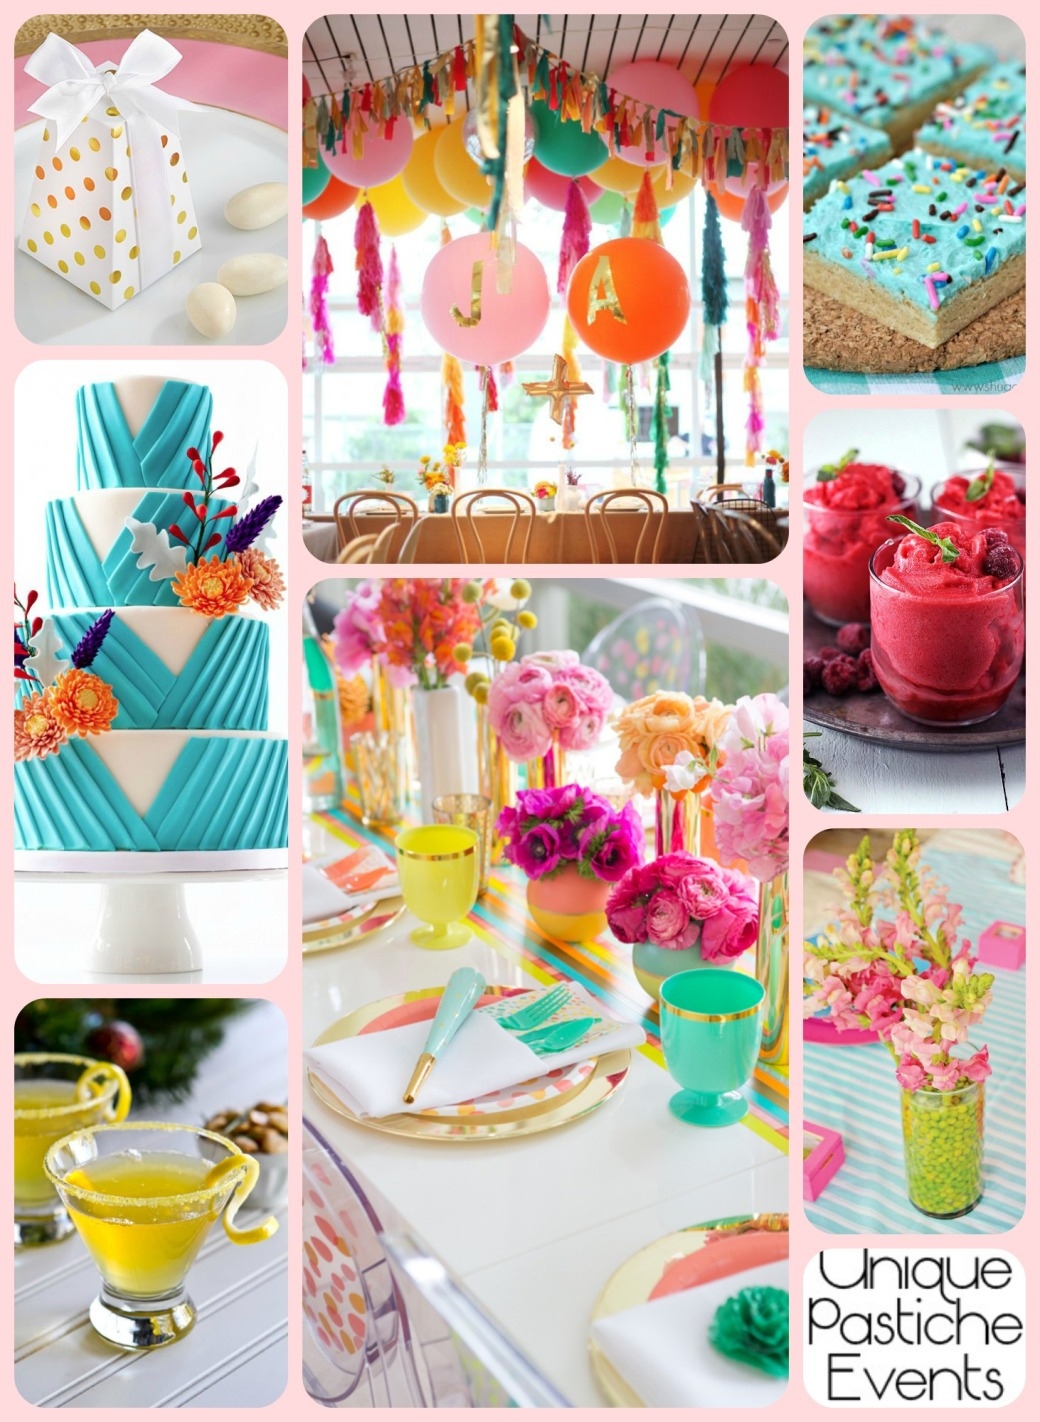 Vibrant Summer Birthday Party Idea for Her Enjoy the full post here: https://uniquepasticheevents.com/2015/05/27/vibrant-summer-birthday-party-idea-for-her/